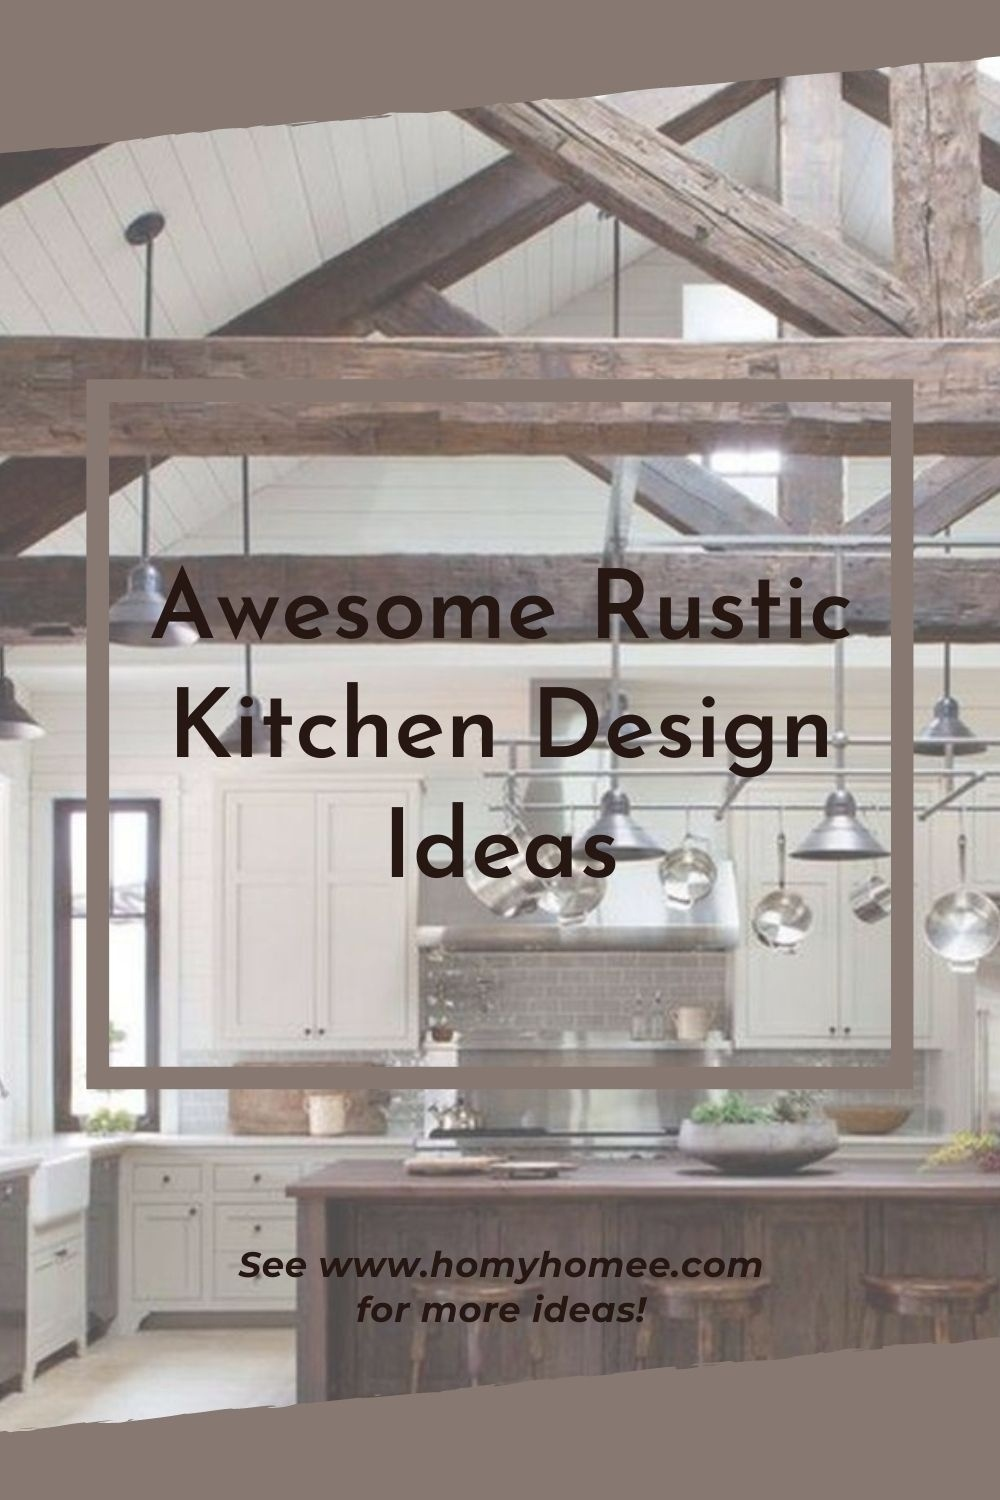 Awesome Rustic Kitchen Design Ideas